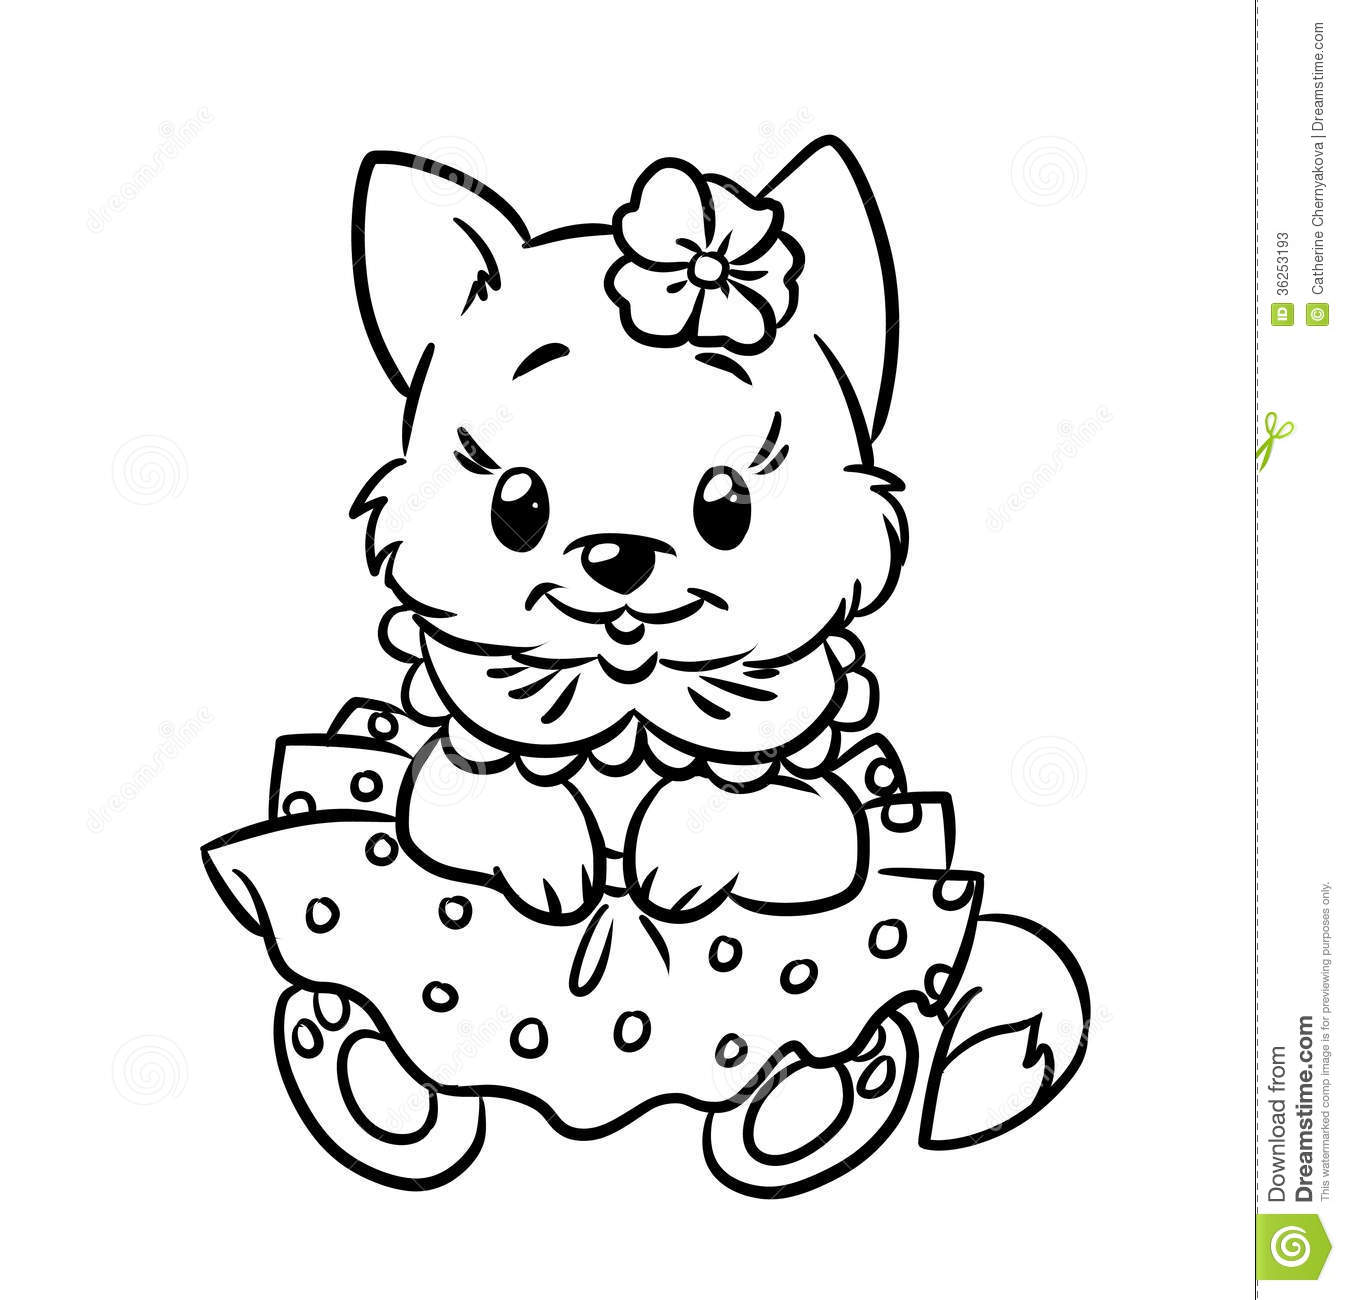 Baby Kitten Coloring Pages Stock Illustration